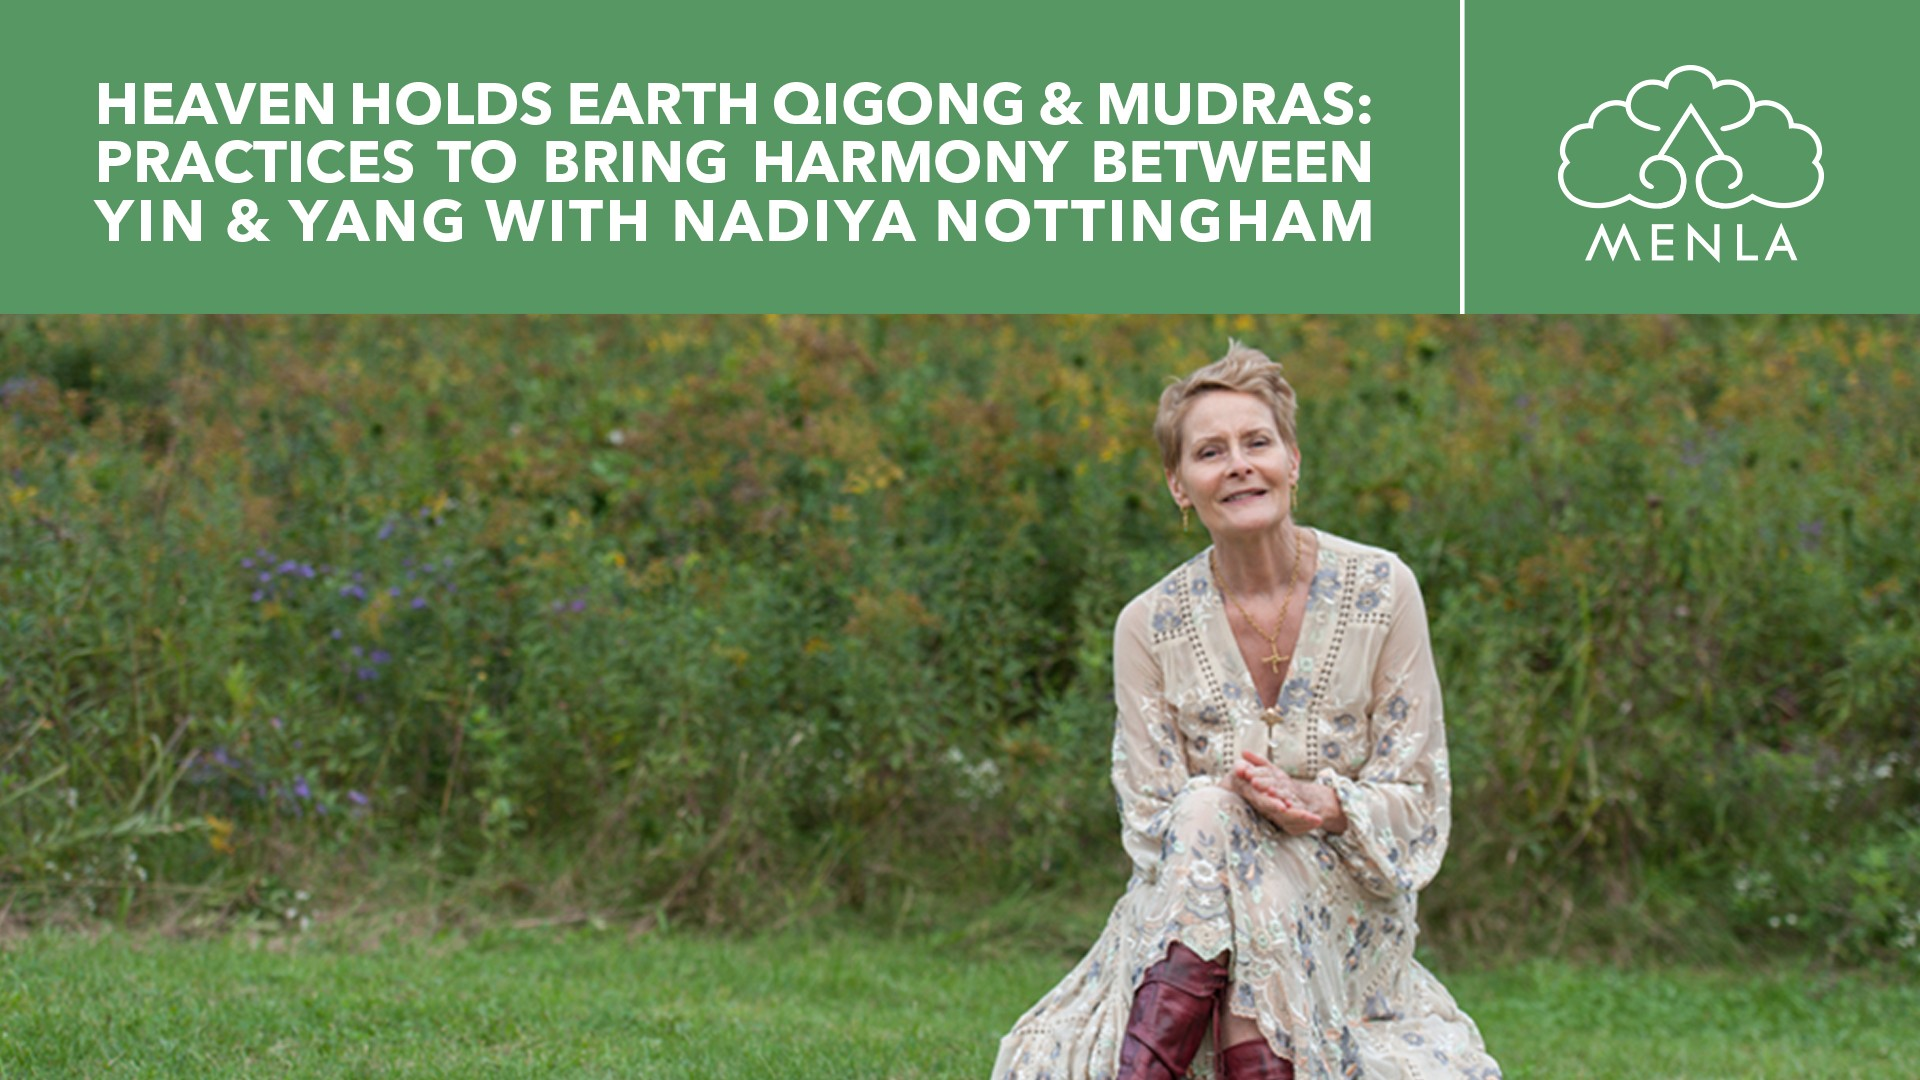 Heaven Holds Earth Qigong & Mudras: A Practice to Bring Harmony between Yin & Yang with Nadiya Nottingham May 15th - May 17th, 2020 at Menla Retreat and Dewa Spa in Phoenicia, New York!